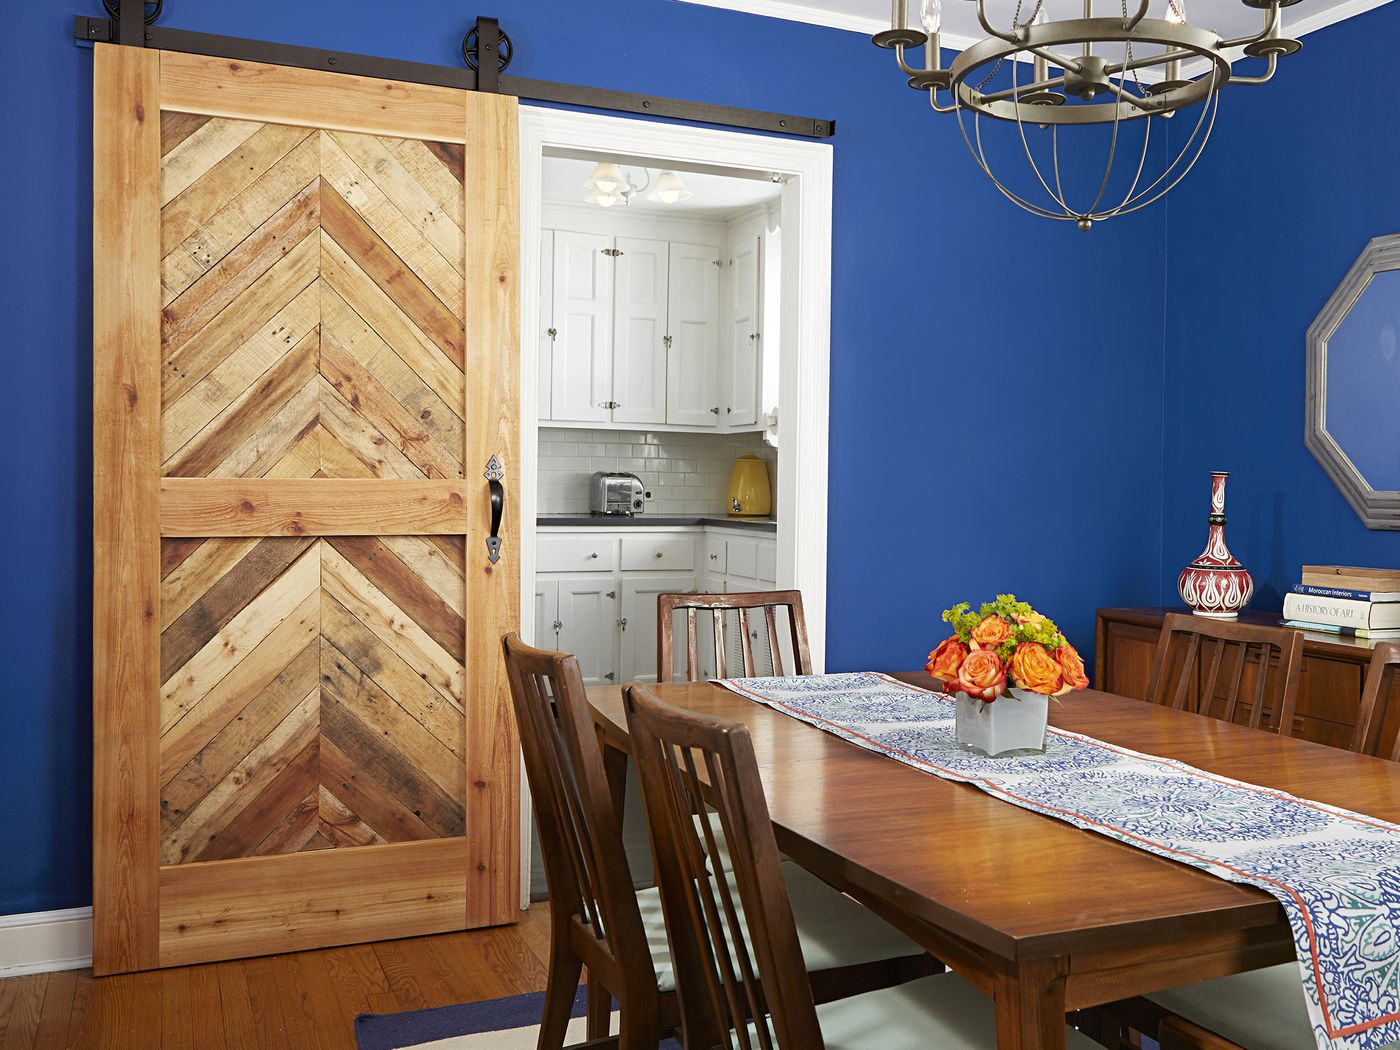 How To Build A Sliding Barn Door In 14 Steps This Old House